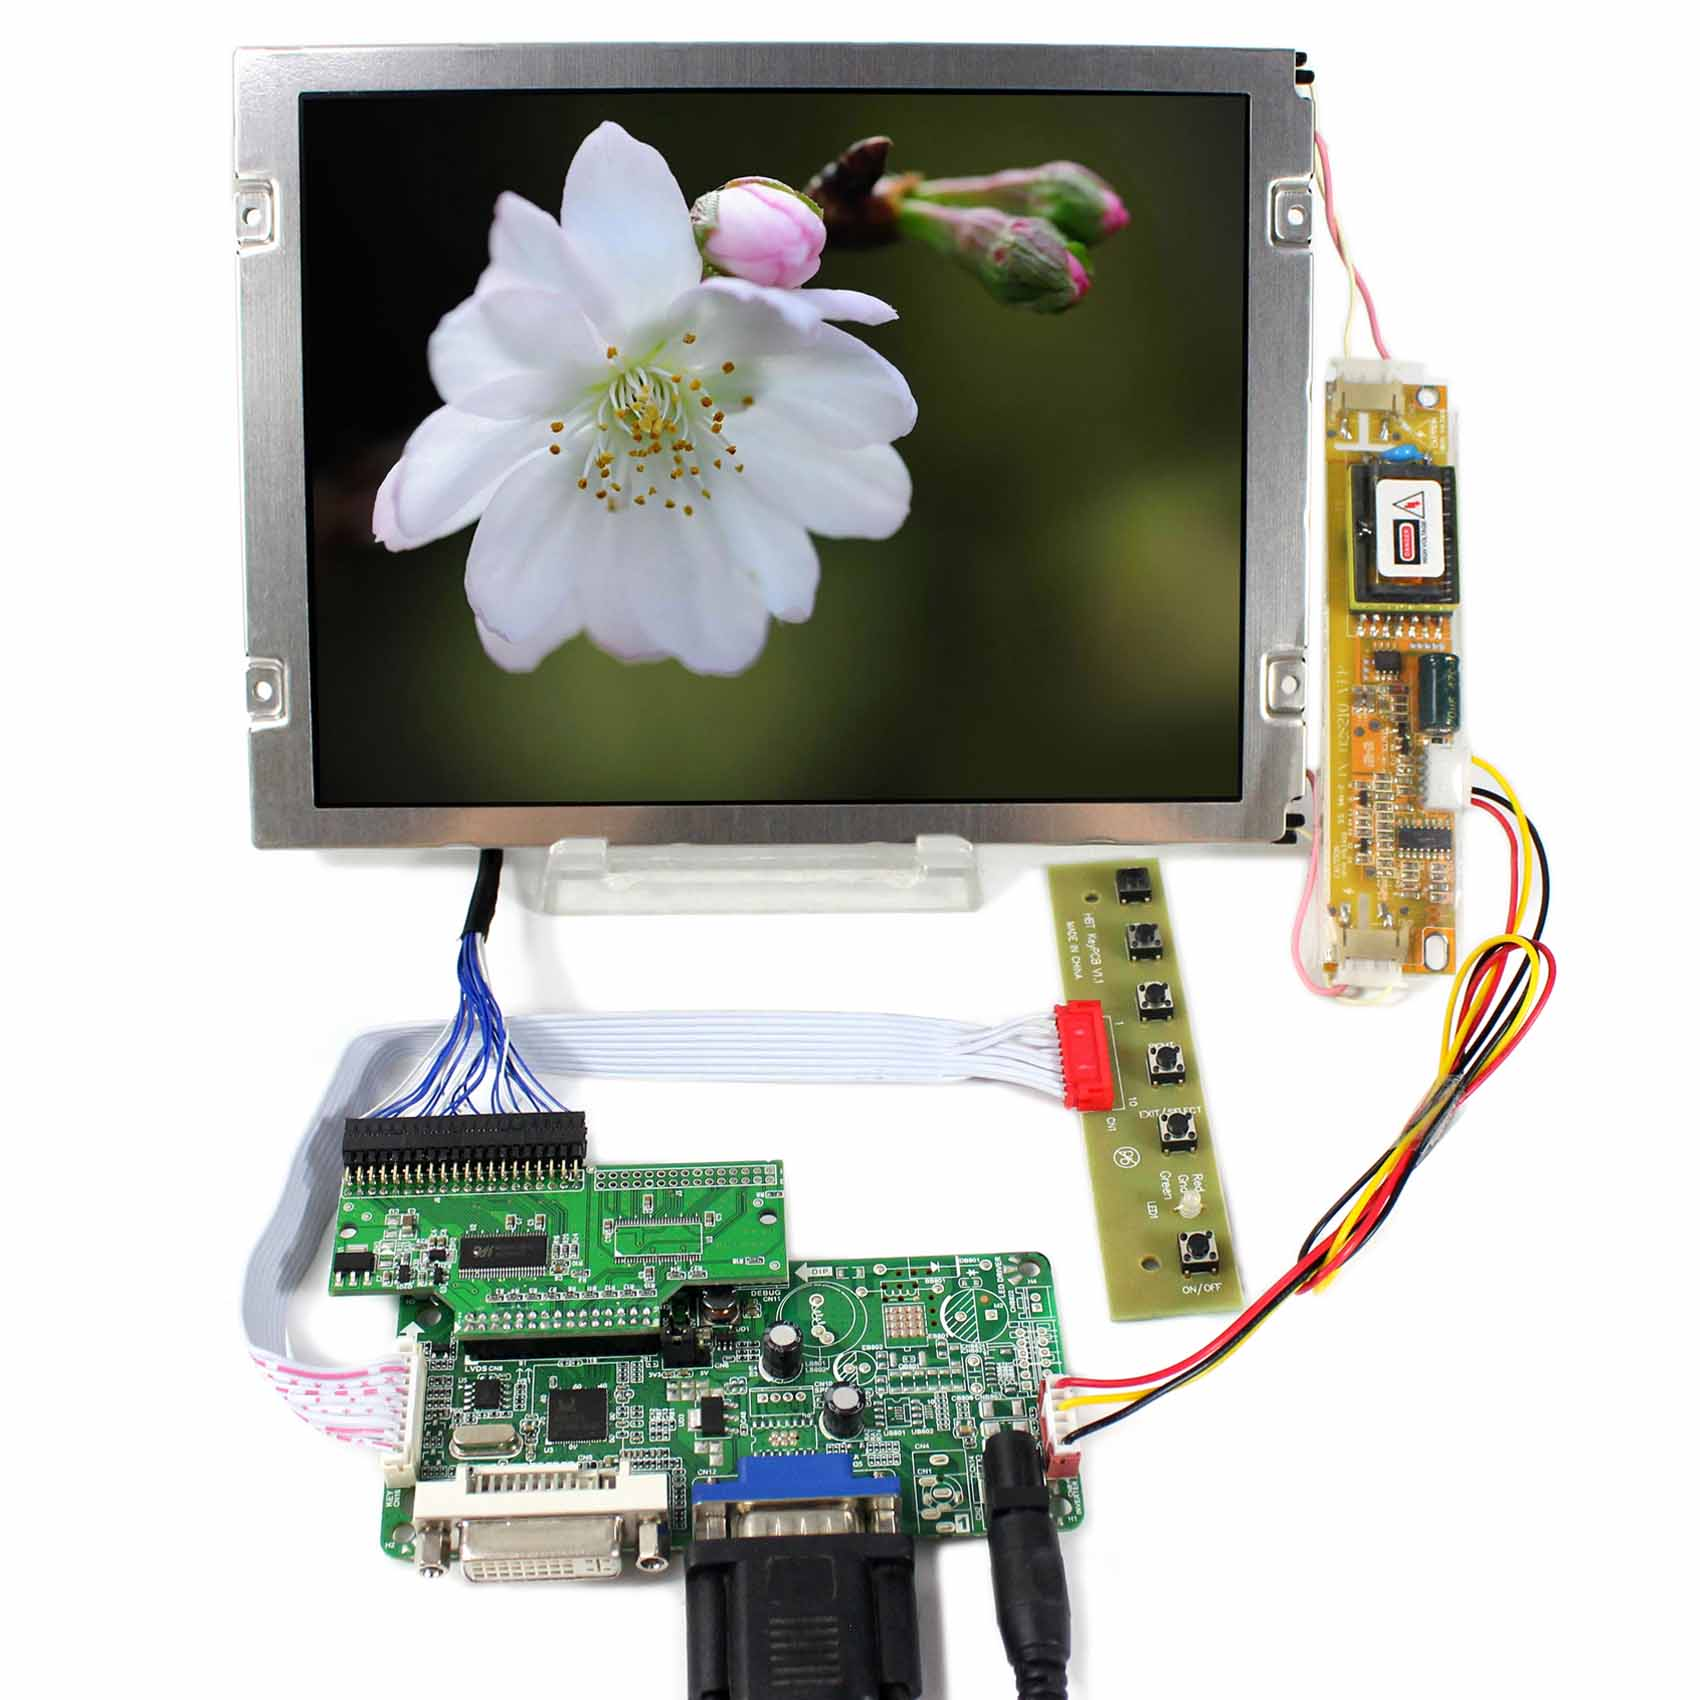 8.4 31 pins CMOS Connector 640x480 VGA DVI LCD Controller Board AA084VC03 Backlight 2CCFL 8.4inch LCD Screen RT2281 vga lcd controller board rt2270c 8 4inch 640x480 aa084vc03 lcd screen